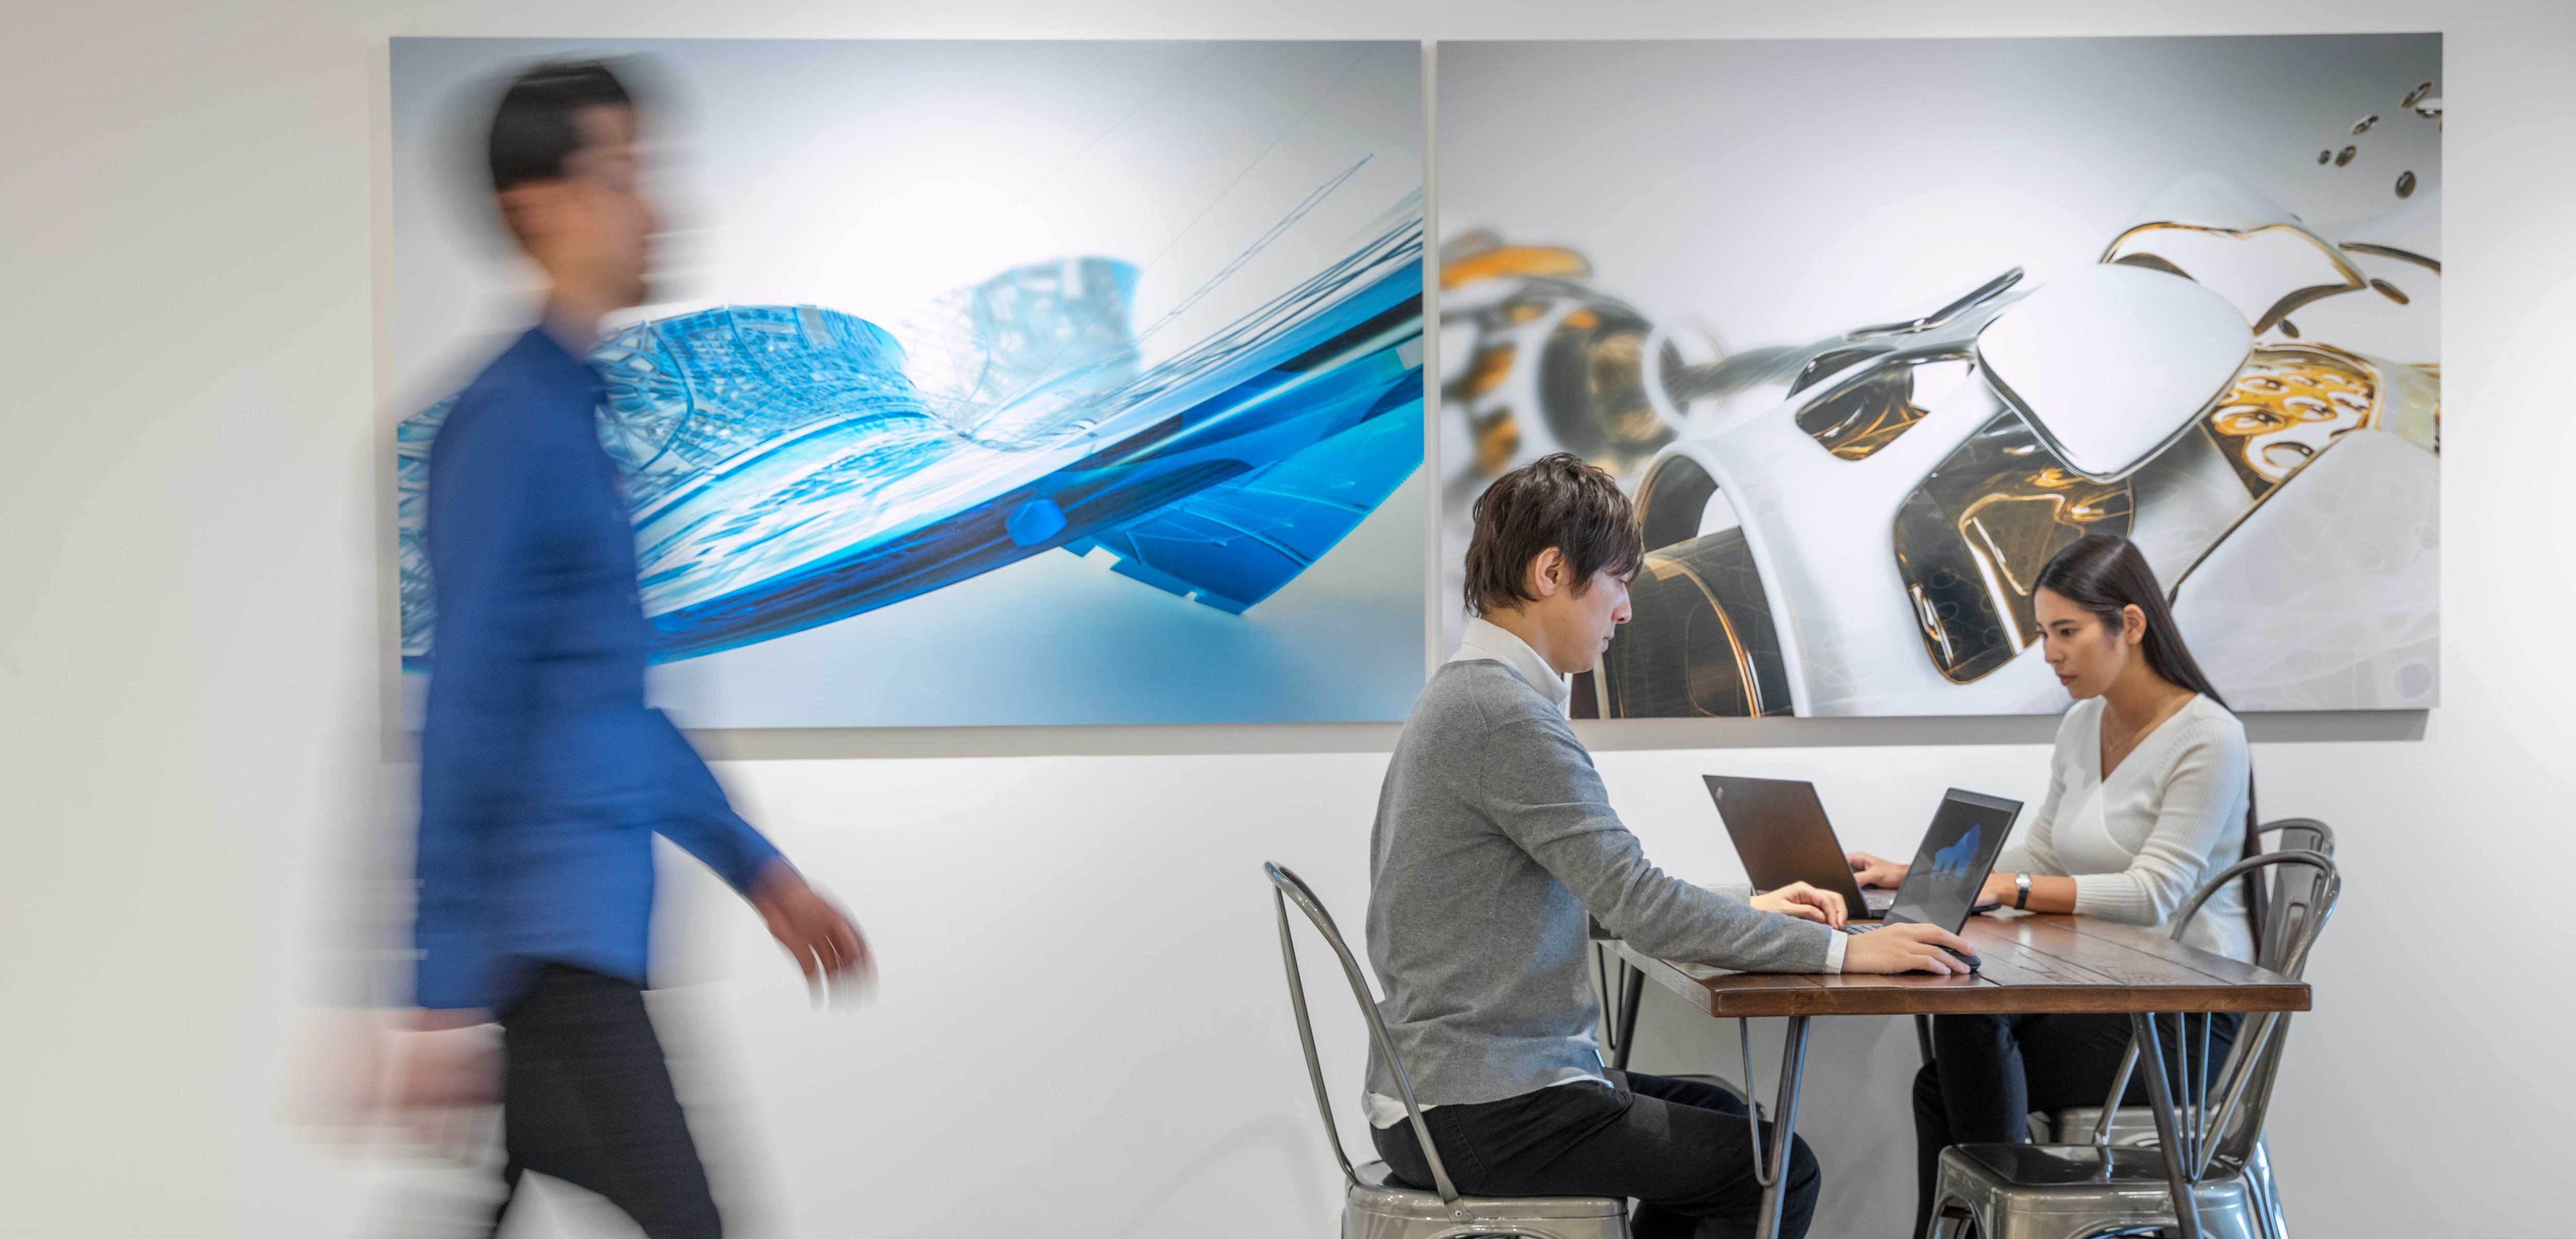 Autodesk Employees at Tokyo Office with Product Images in the back